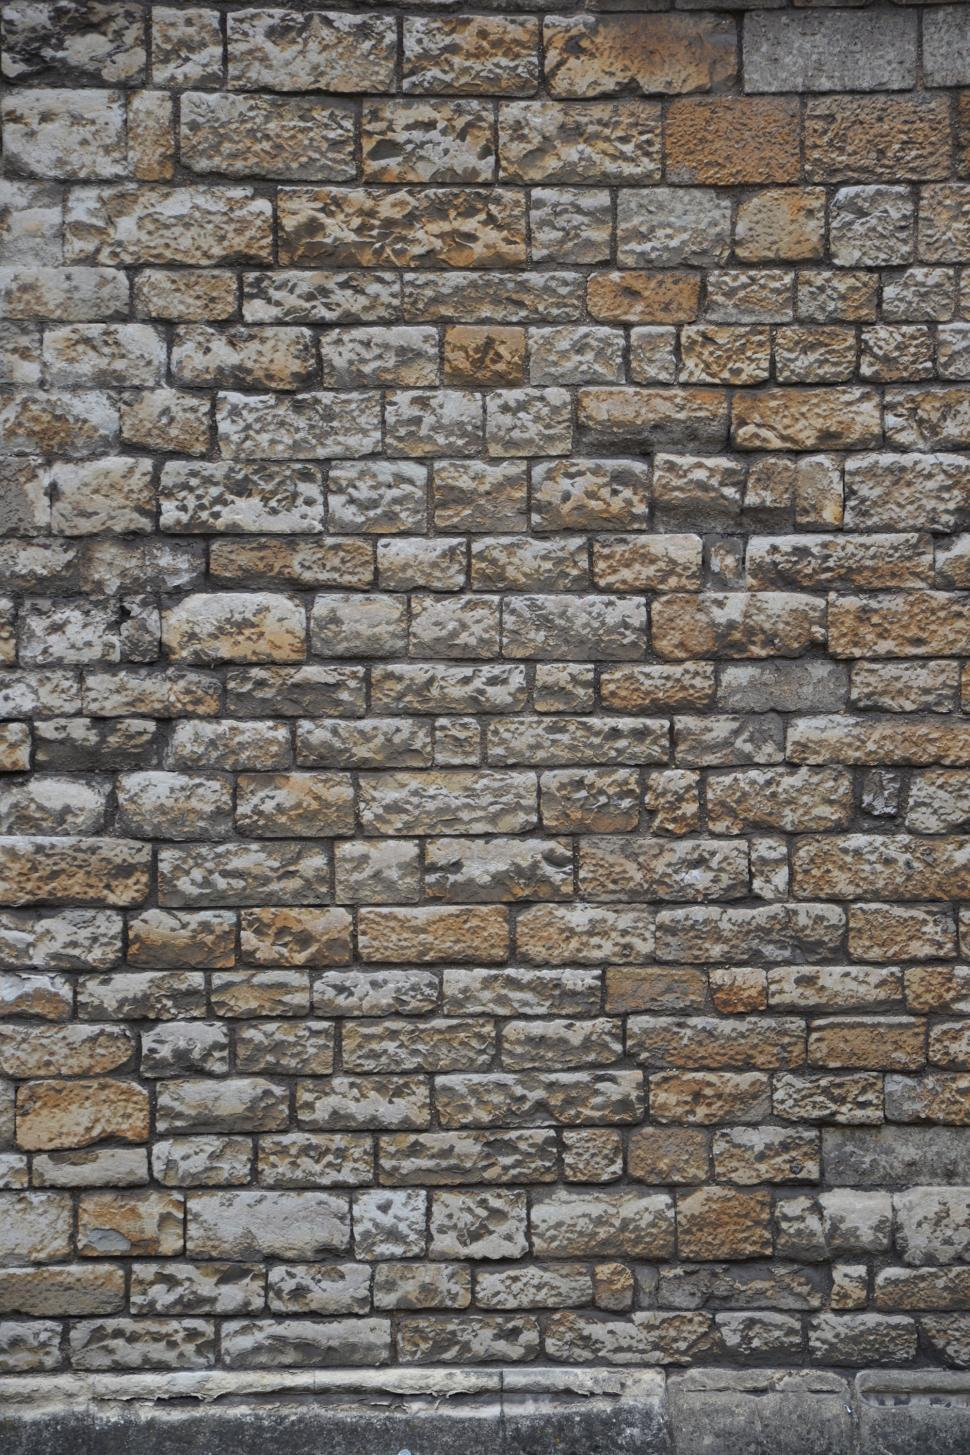 Download Free Stock Photo of Brick wall texture